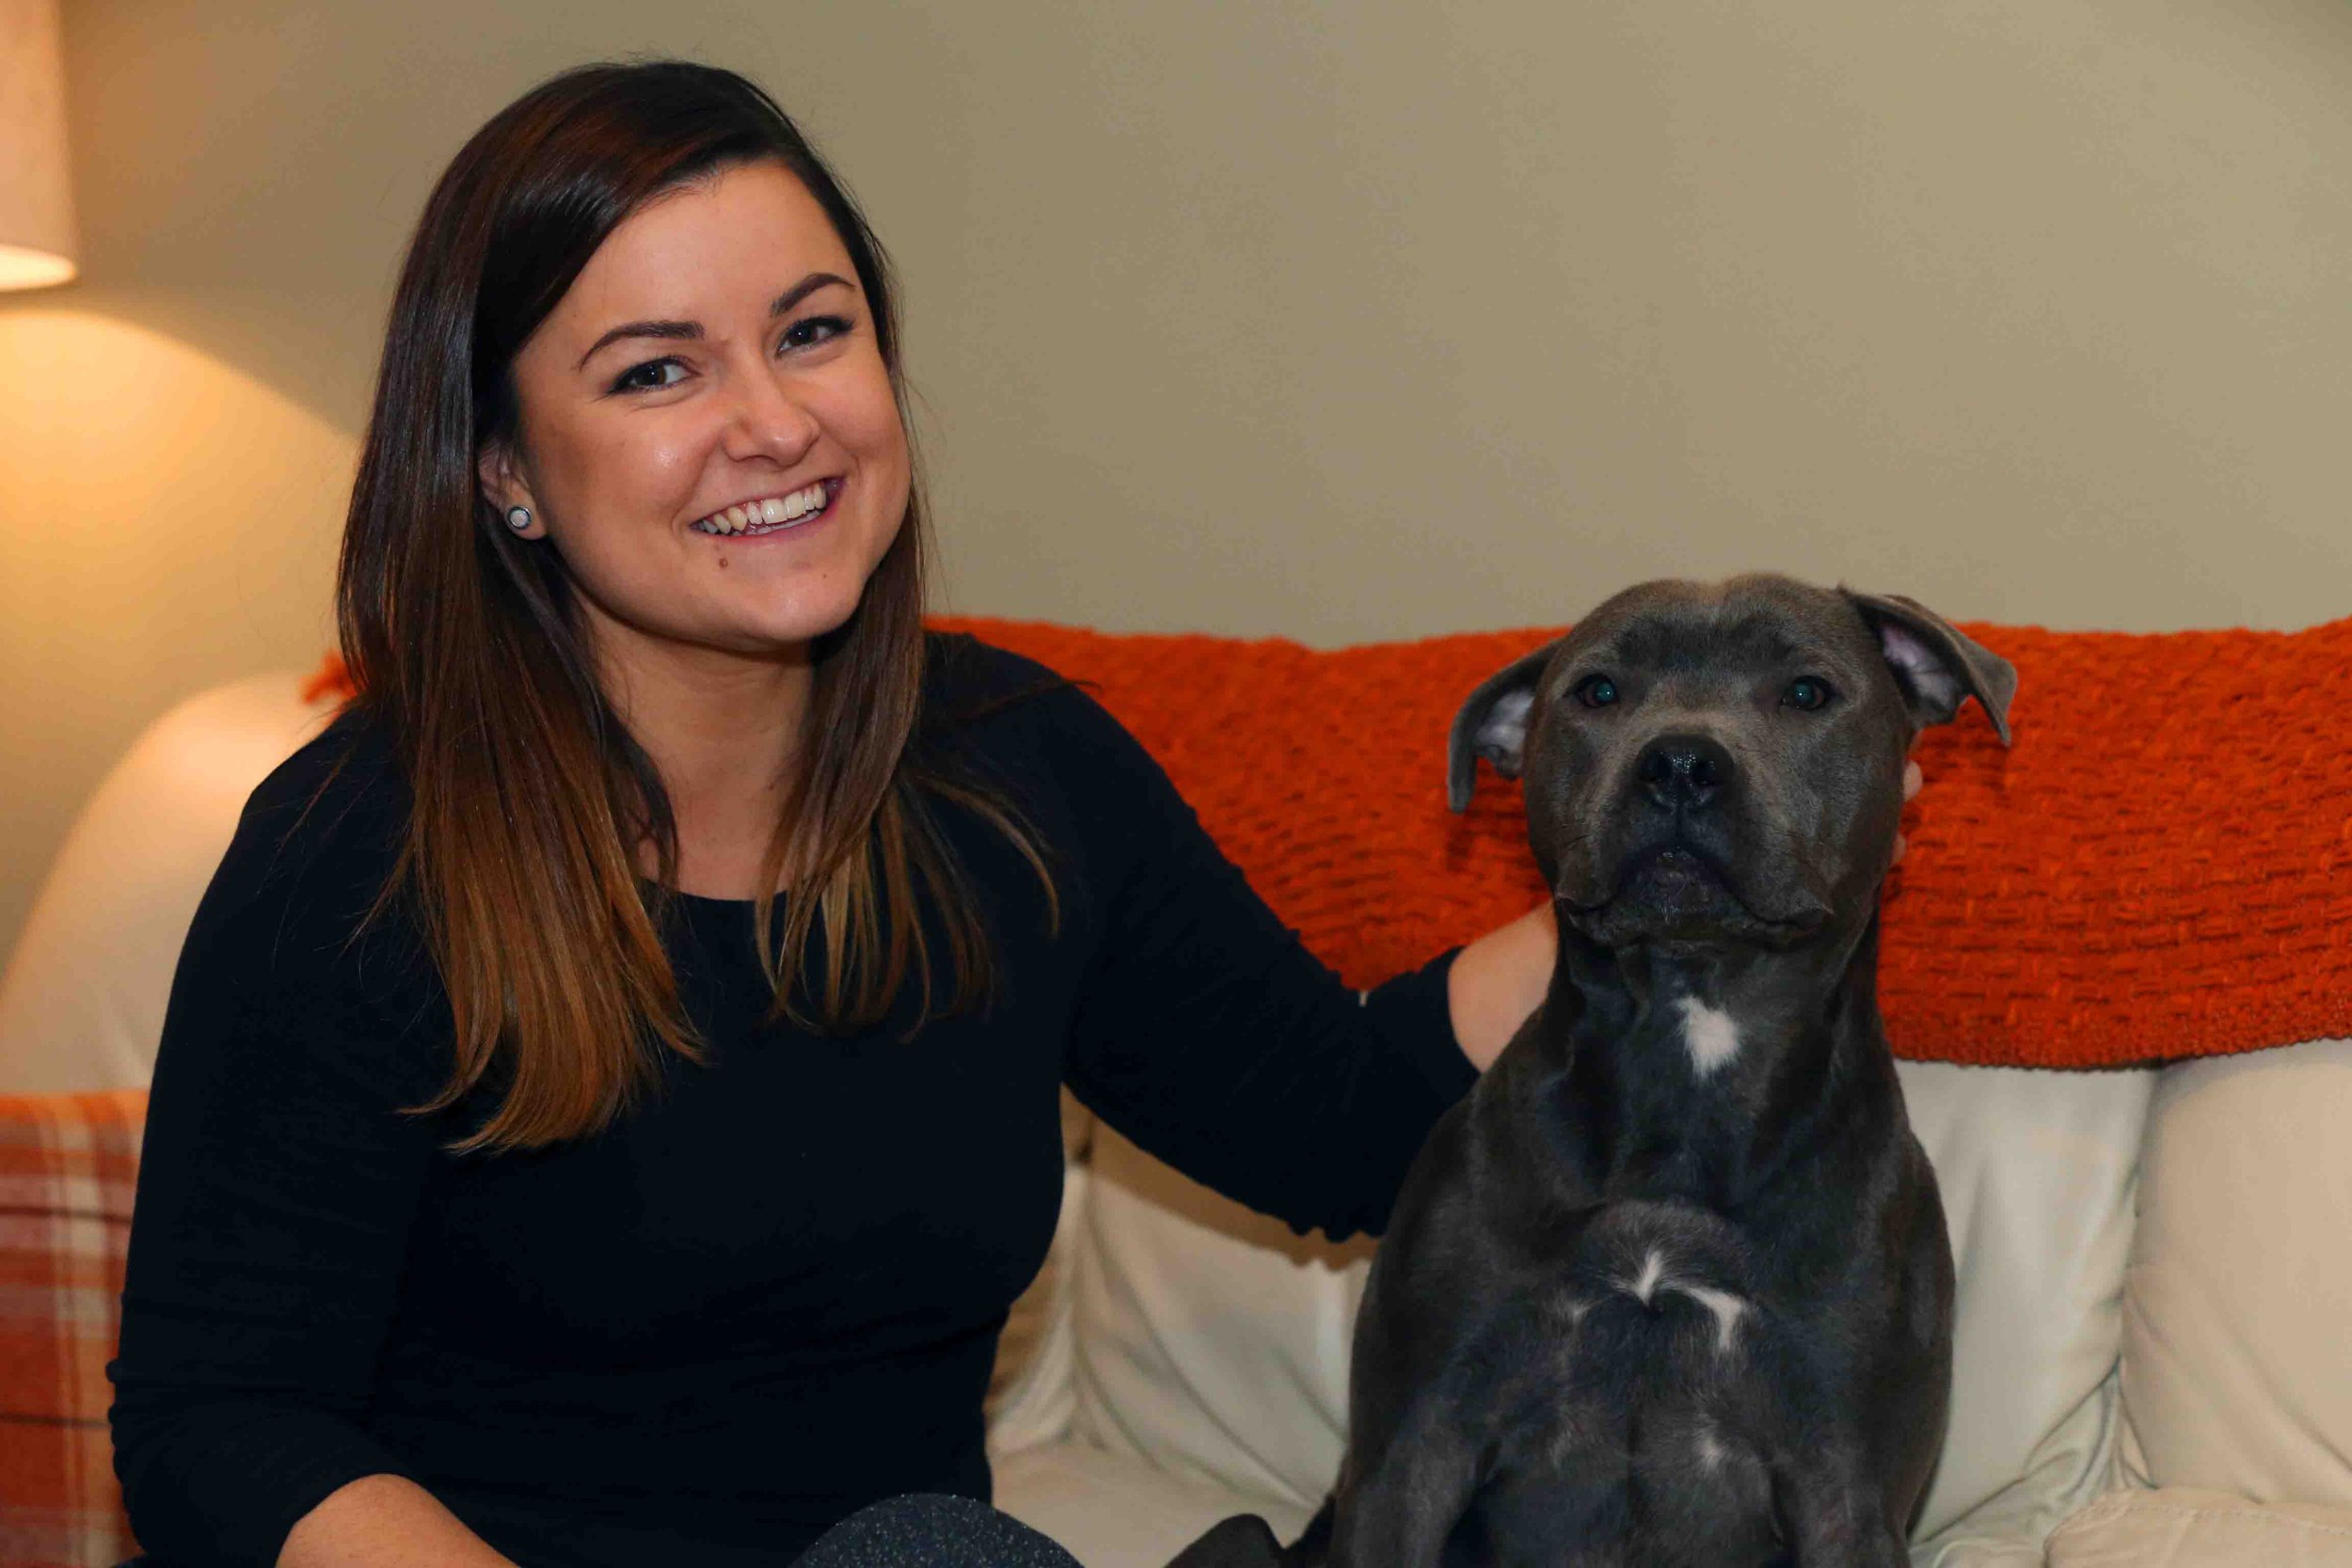 Police seize woman's harmless dog for looking like a banned breed